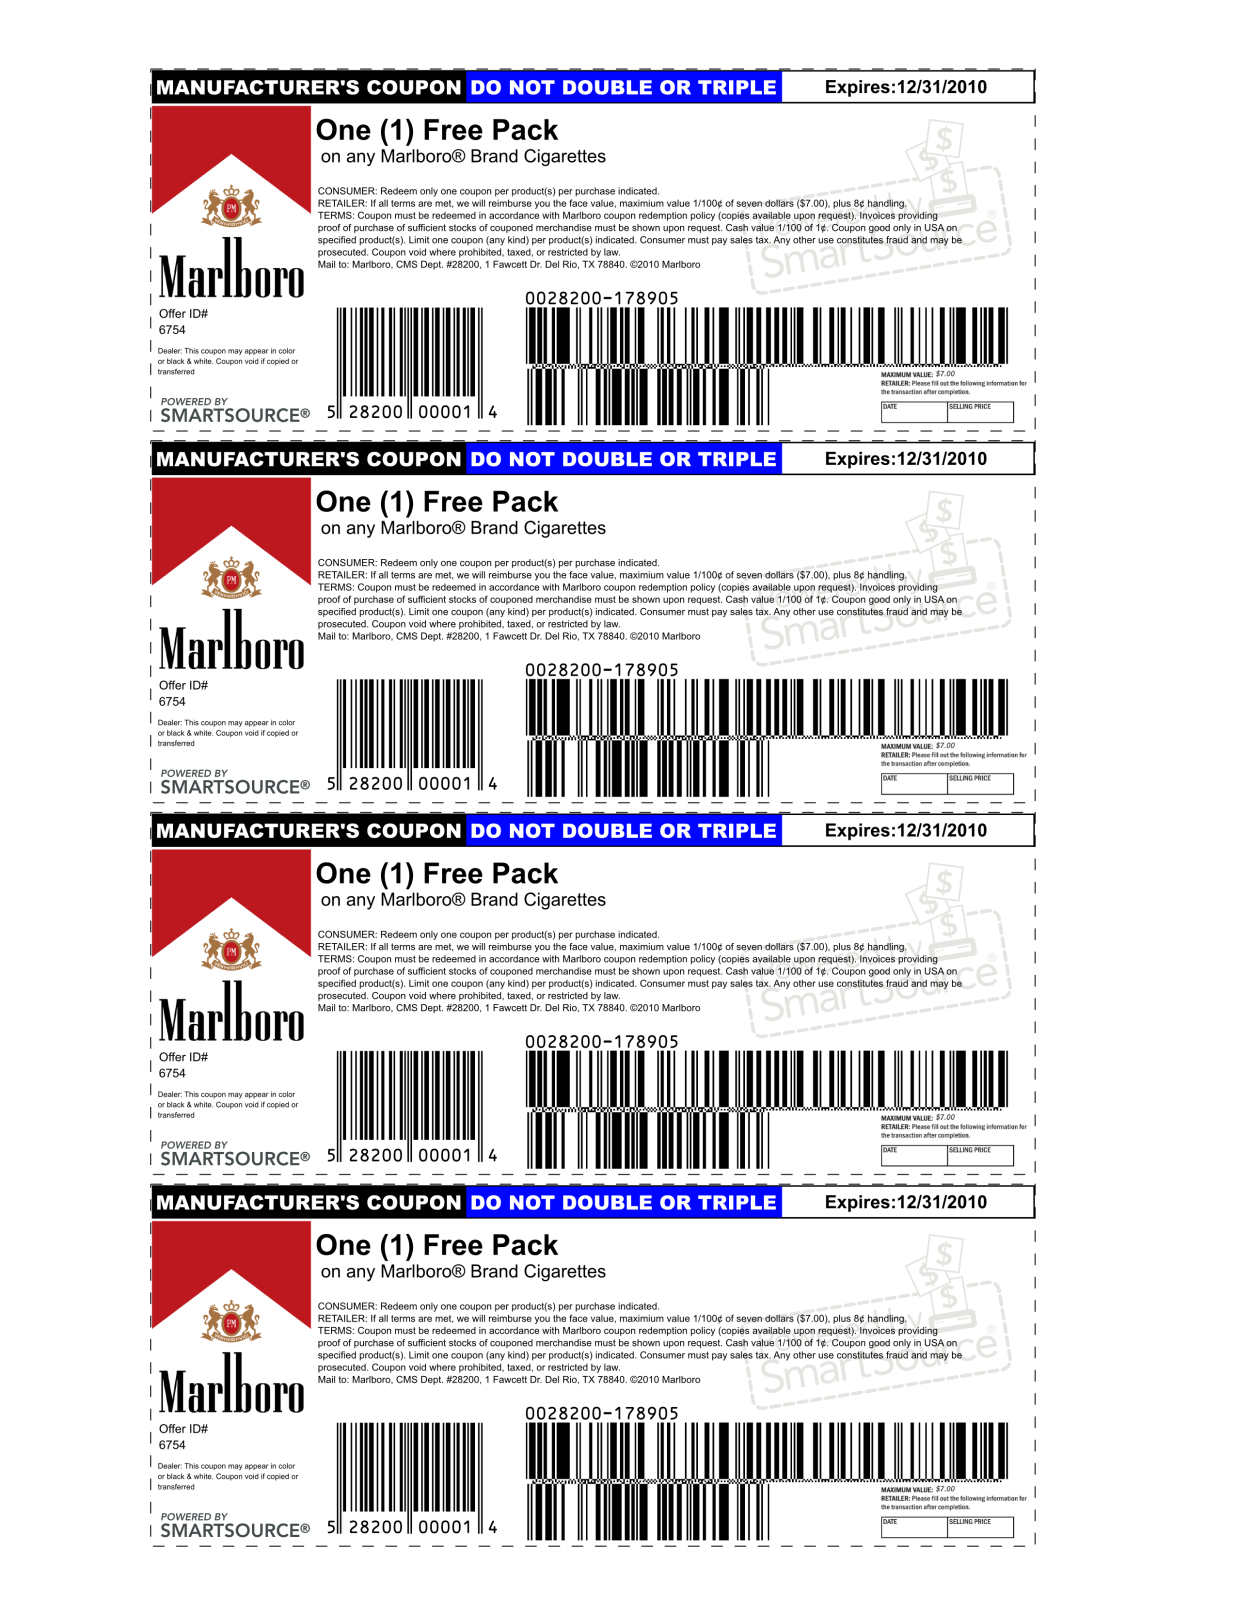 Marlboro Coupons Printable 2013 | Is Using A Possibly Fake Coupon - Free Pack Of Cigarettes Printable Coupon